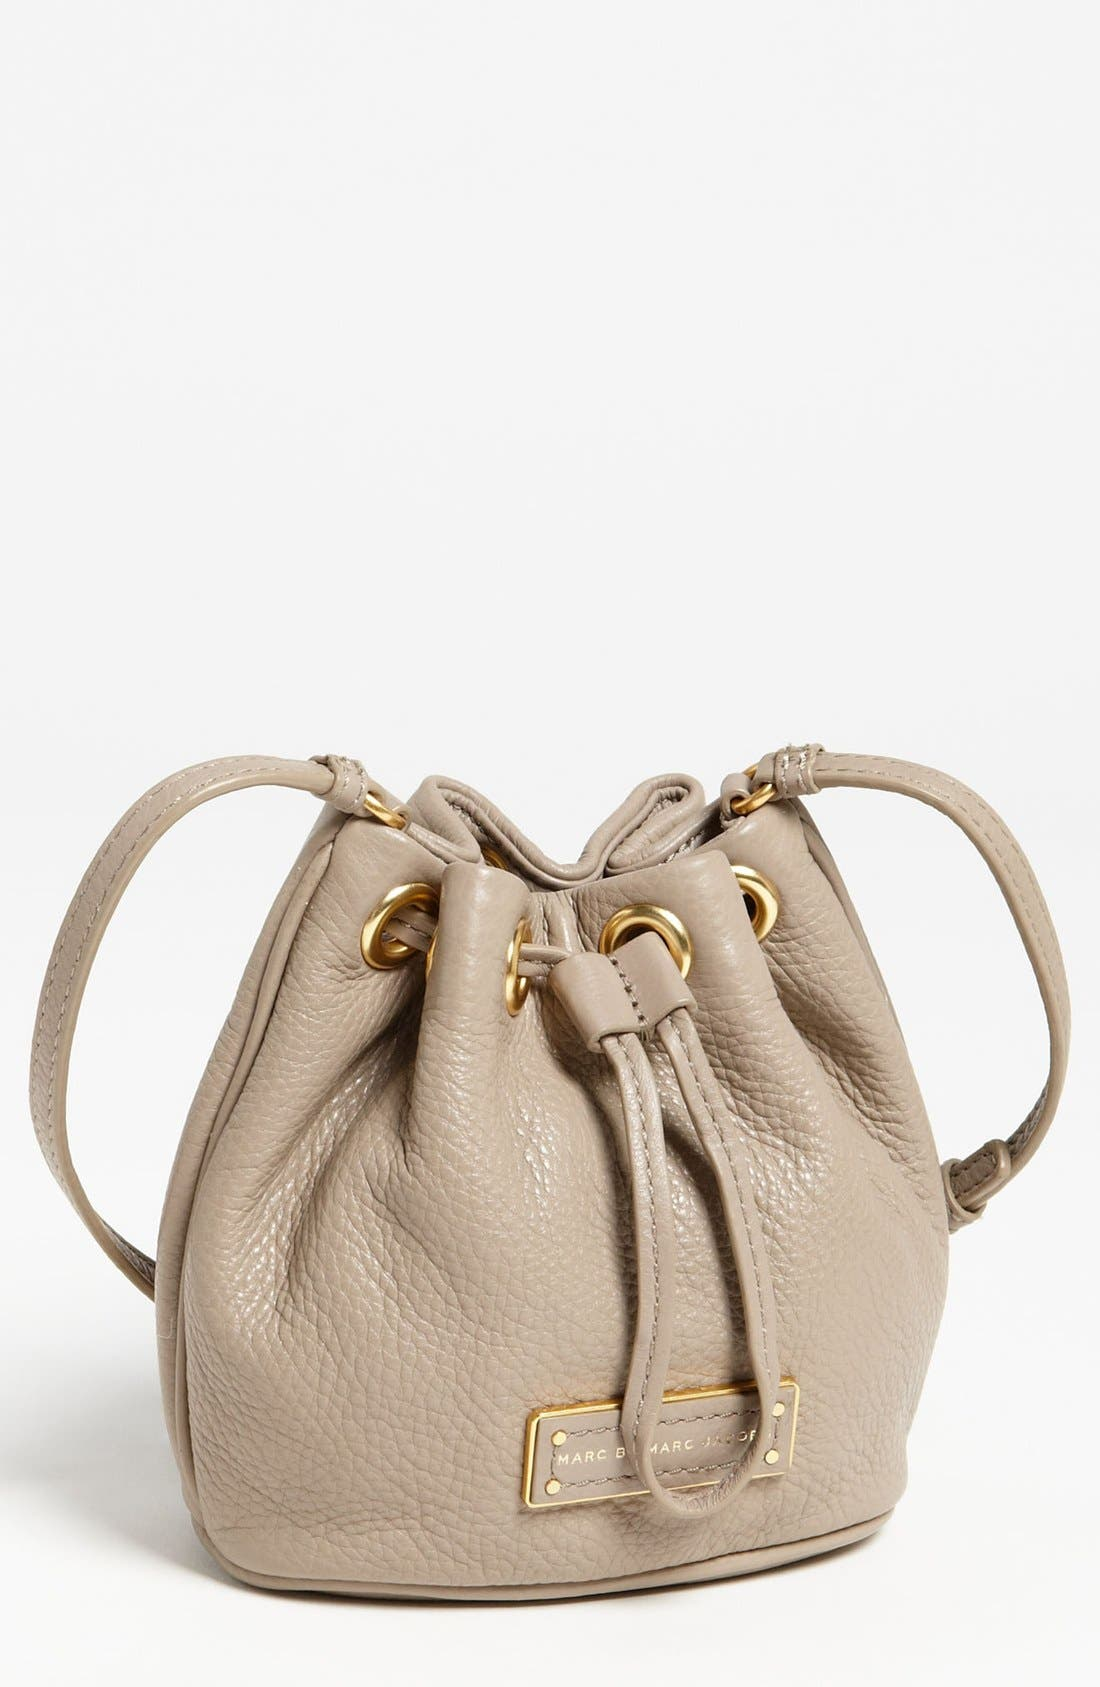 Alternate Image 1 Selected - MARC BY MARC JACOBS 'Too Hot to Handle - Mini' Leather Drawstring Crossbody Bag